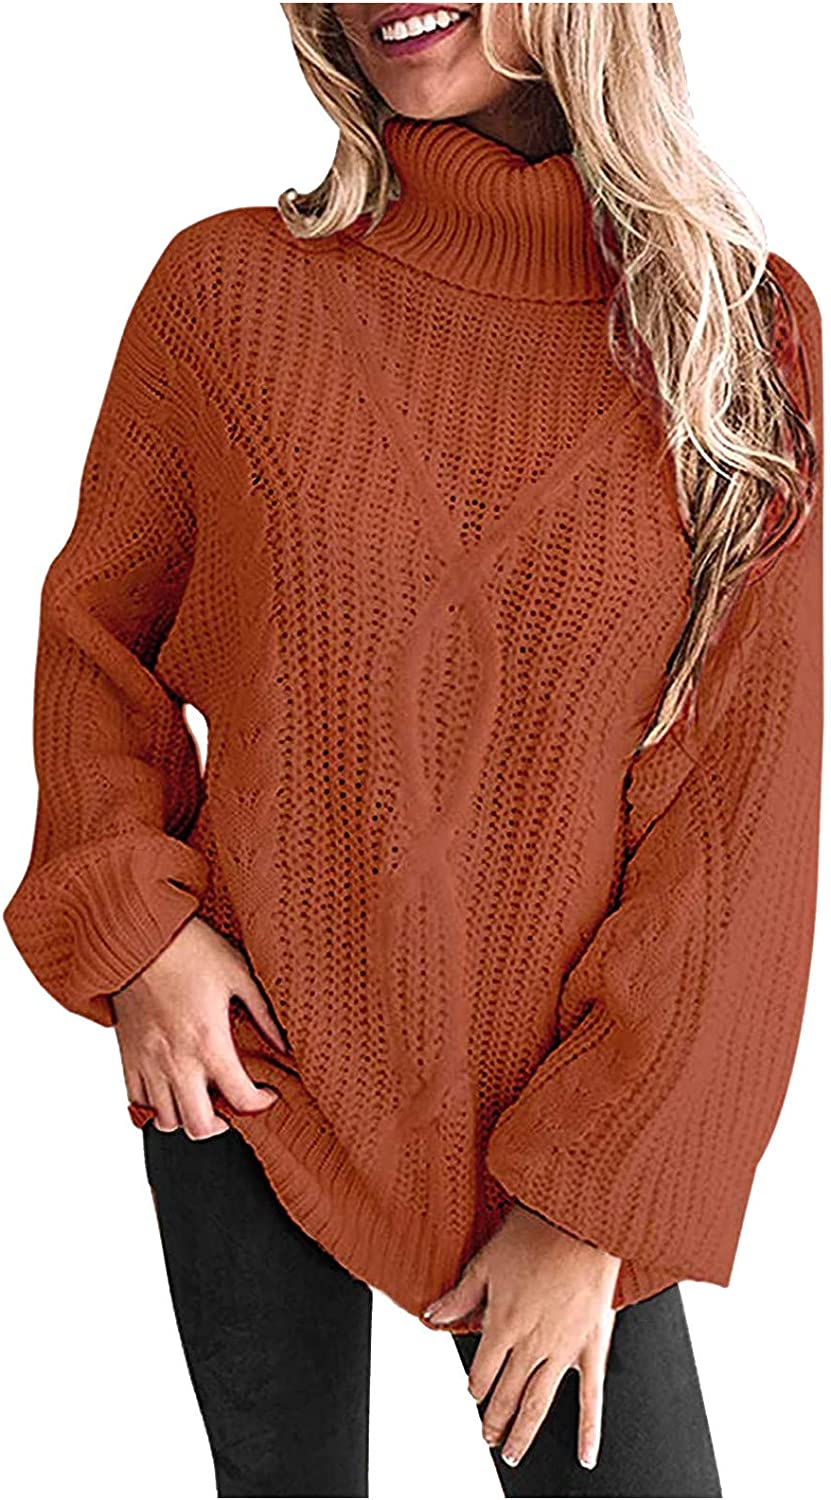 FABIURT Sweaters for Women, Womens Fashion Turtleneck Long Sleeve Casual Loose Chunky Knit Pullover Sweater Jumper Tops